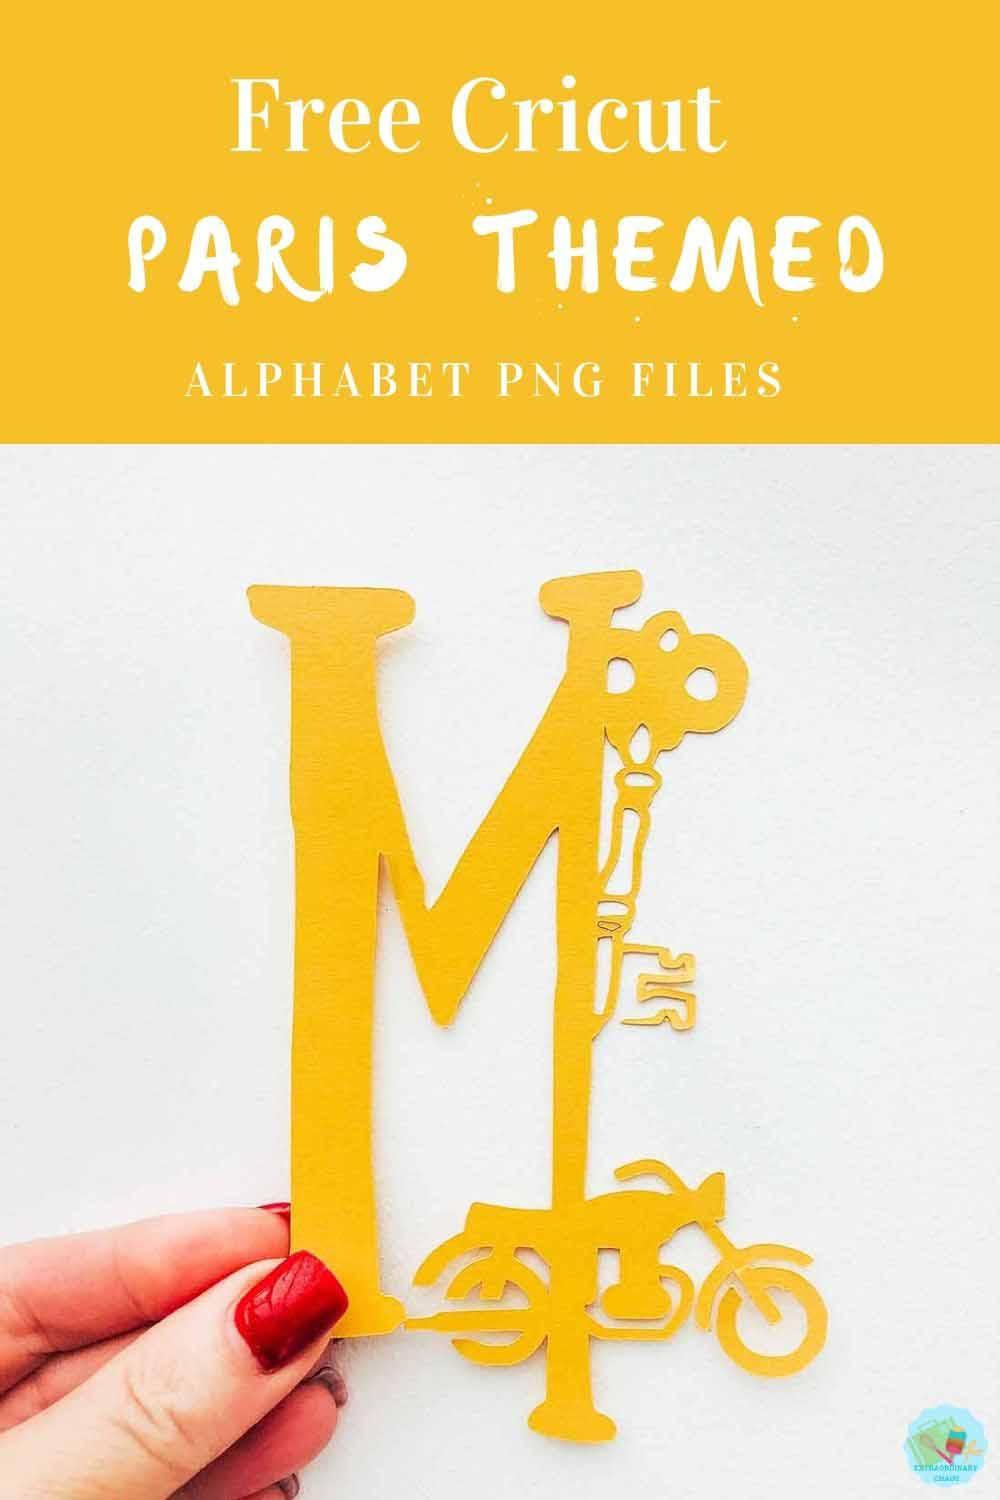 Free Cricut Paris Themed png files for Scrapbooking Layouts